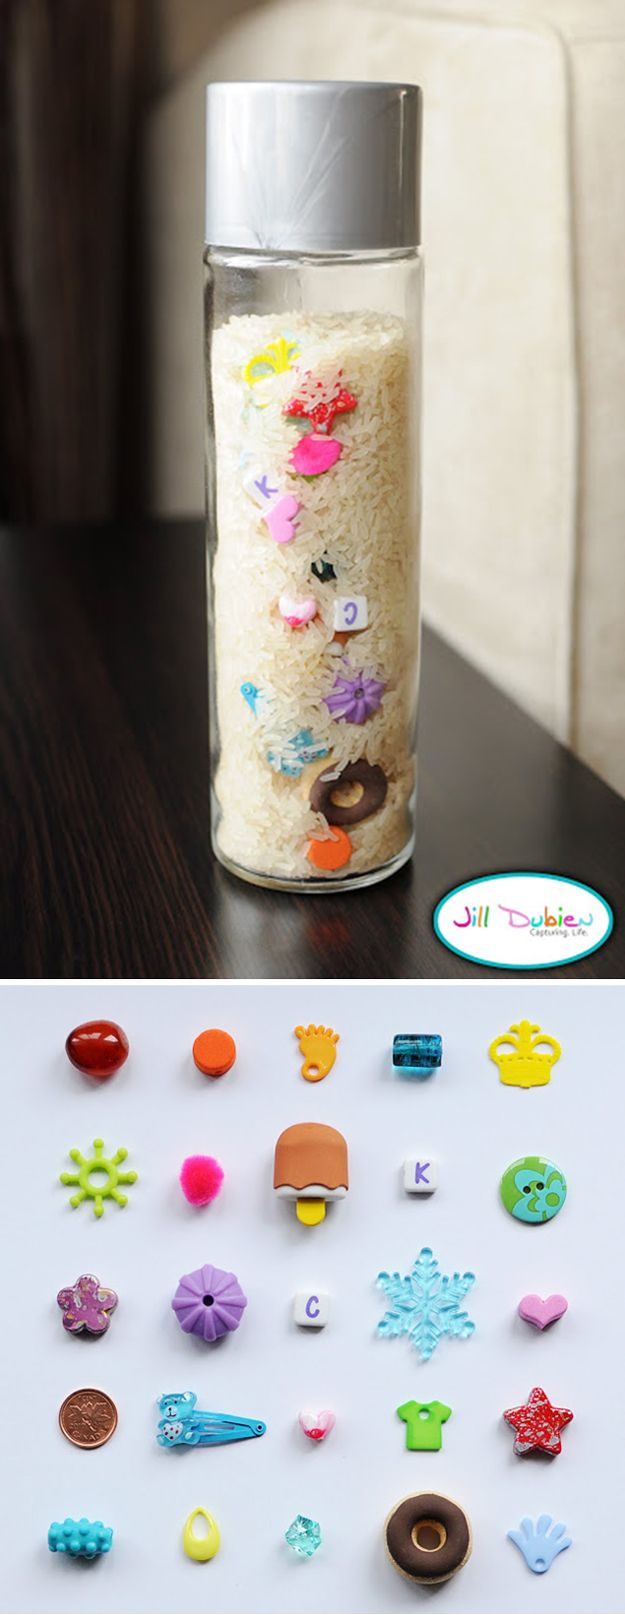 Easy I-Spy Bottle   Cool Homemade DIY Crafts for Kids by DIY Ready at  www.diyready.com/diy-kids-crafts-you-can-make-in-under-an-hour/